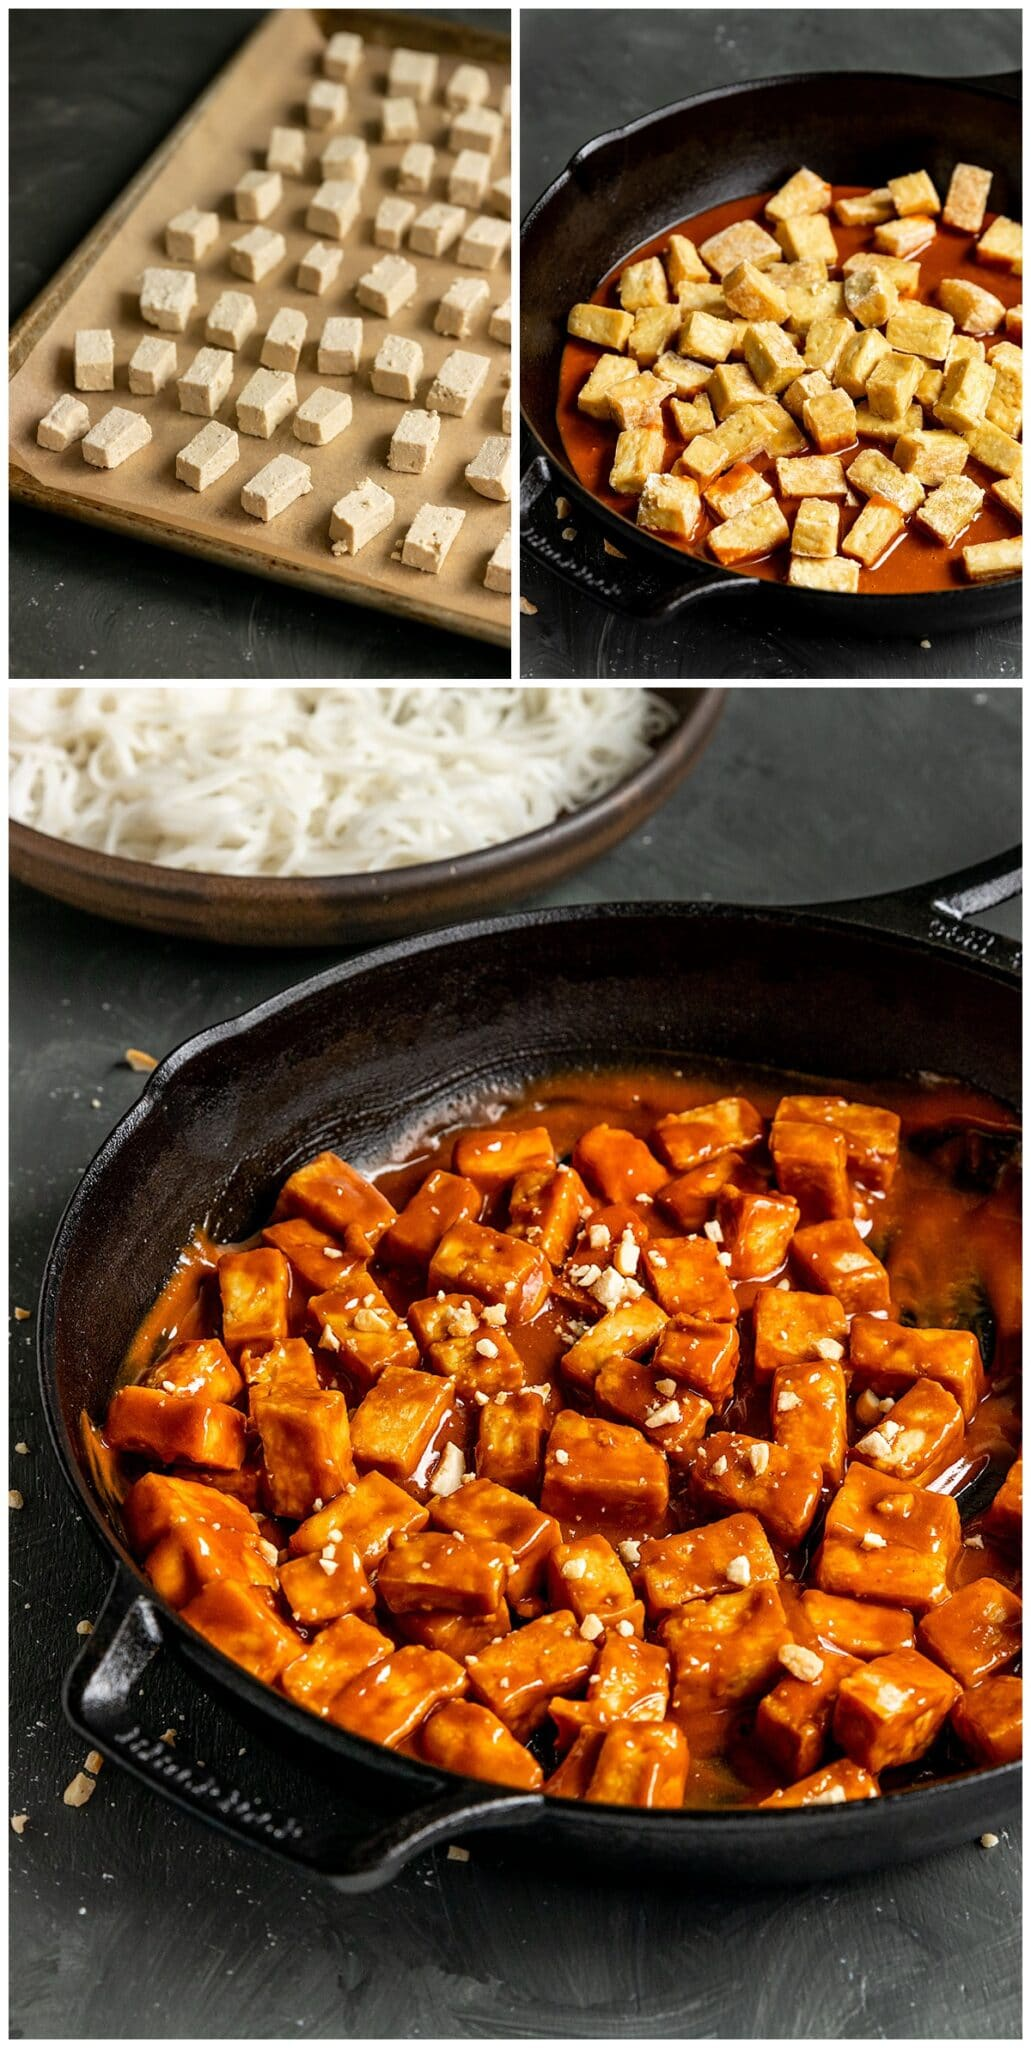 baked tofu getting mixed with peanut sauce in cast iron skillet